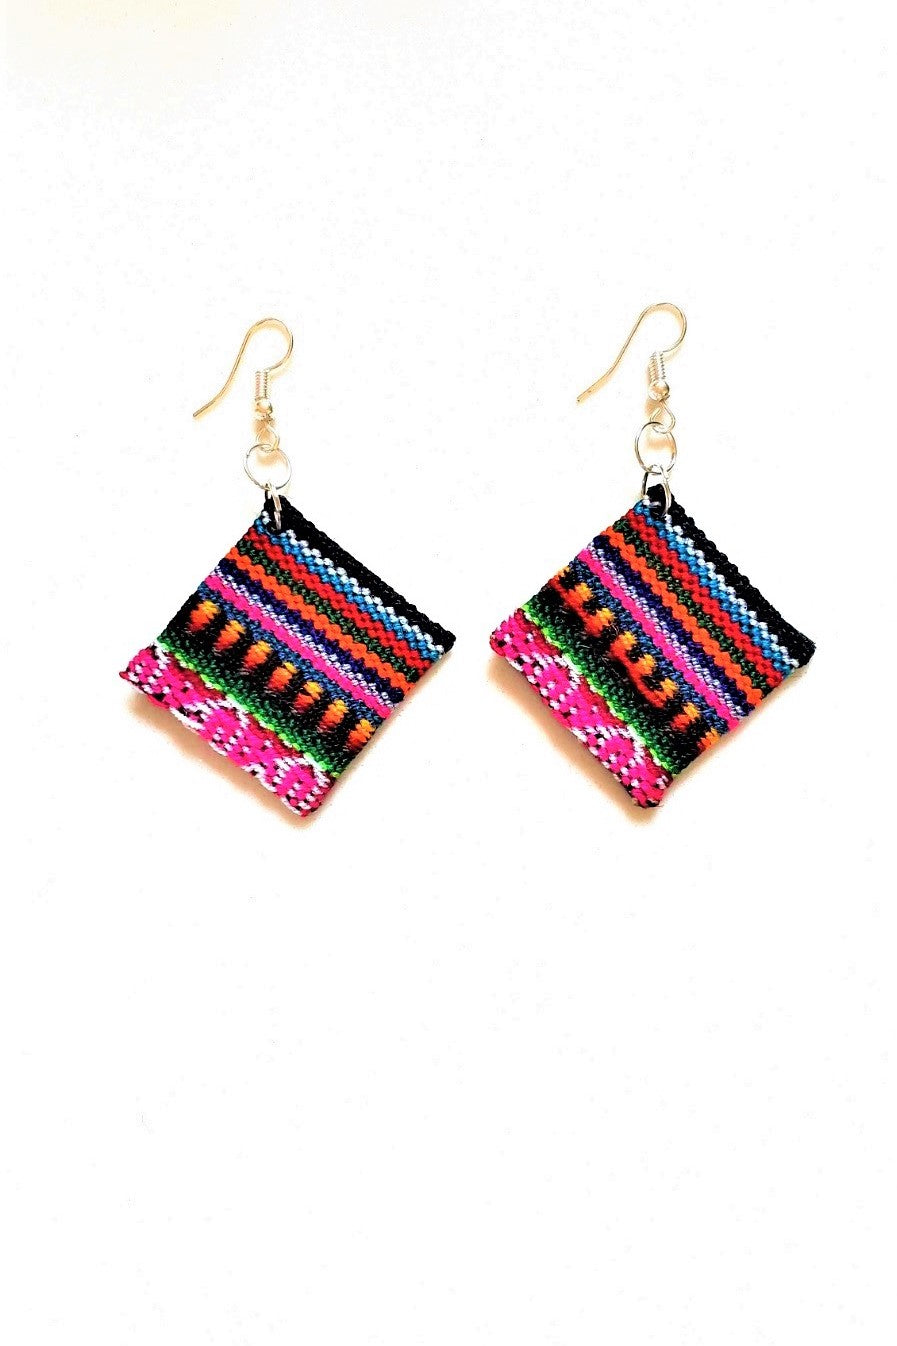 Accessories earrings - Spicy Soul